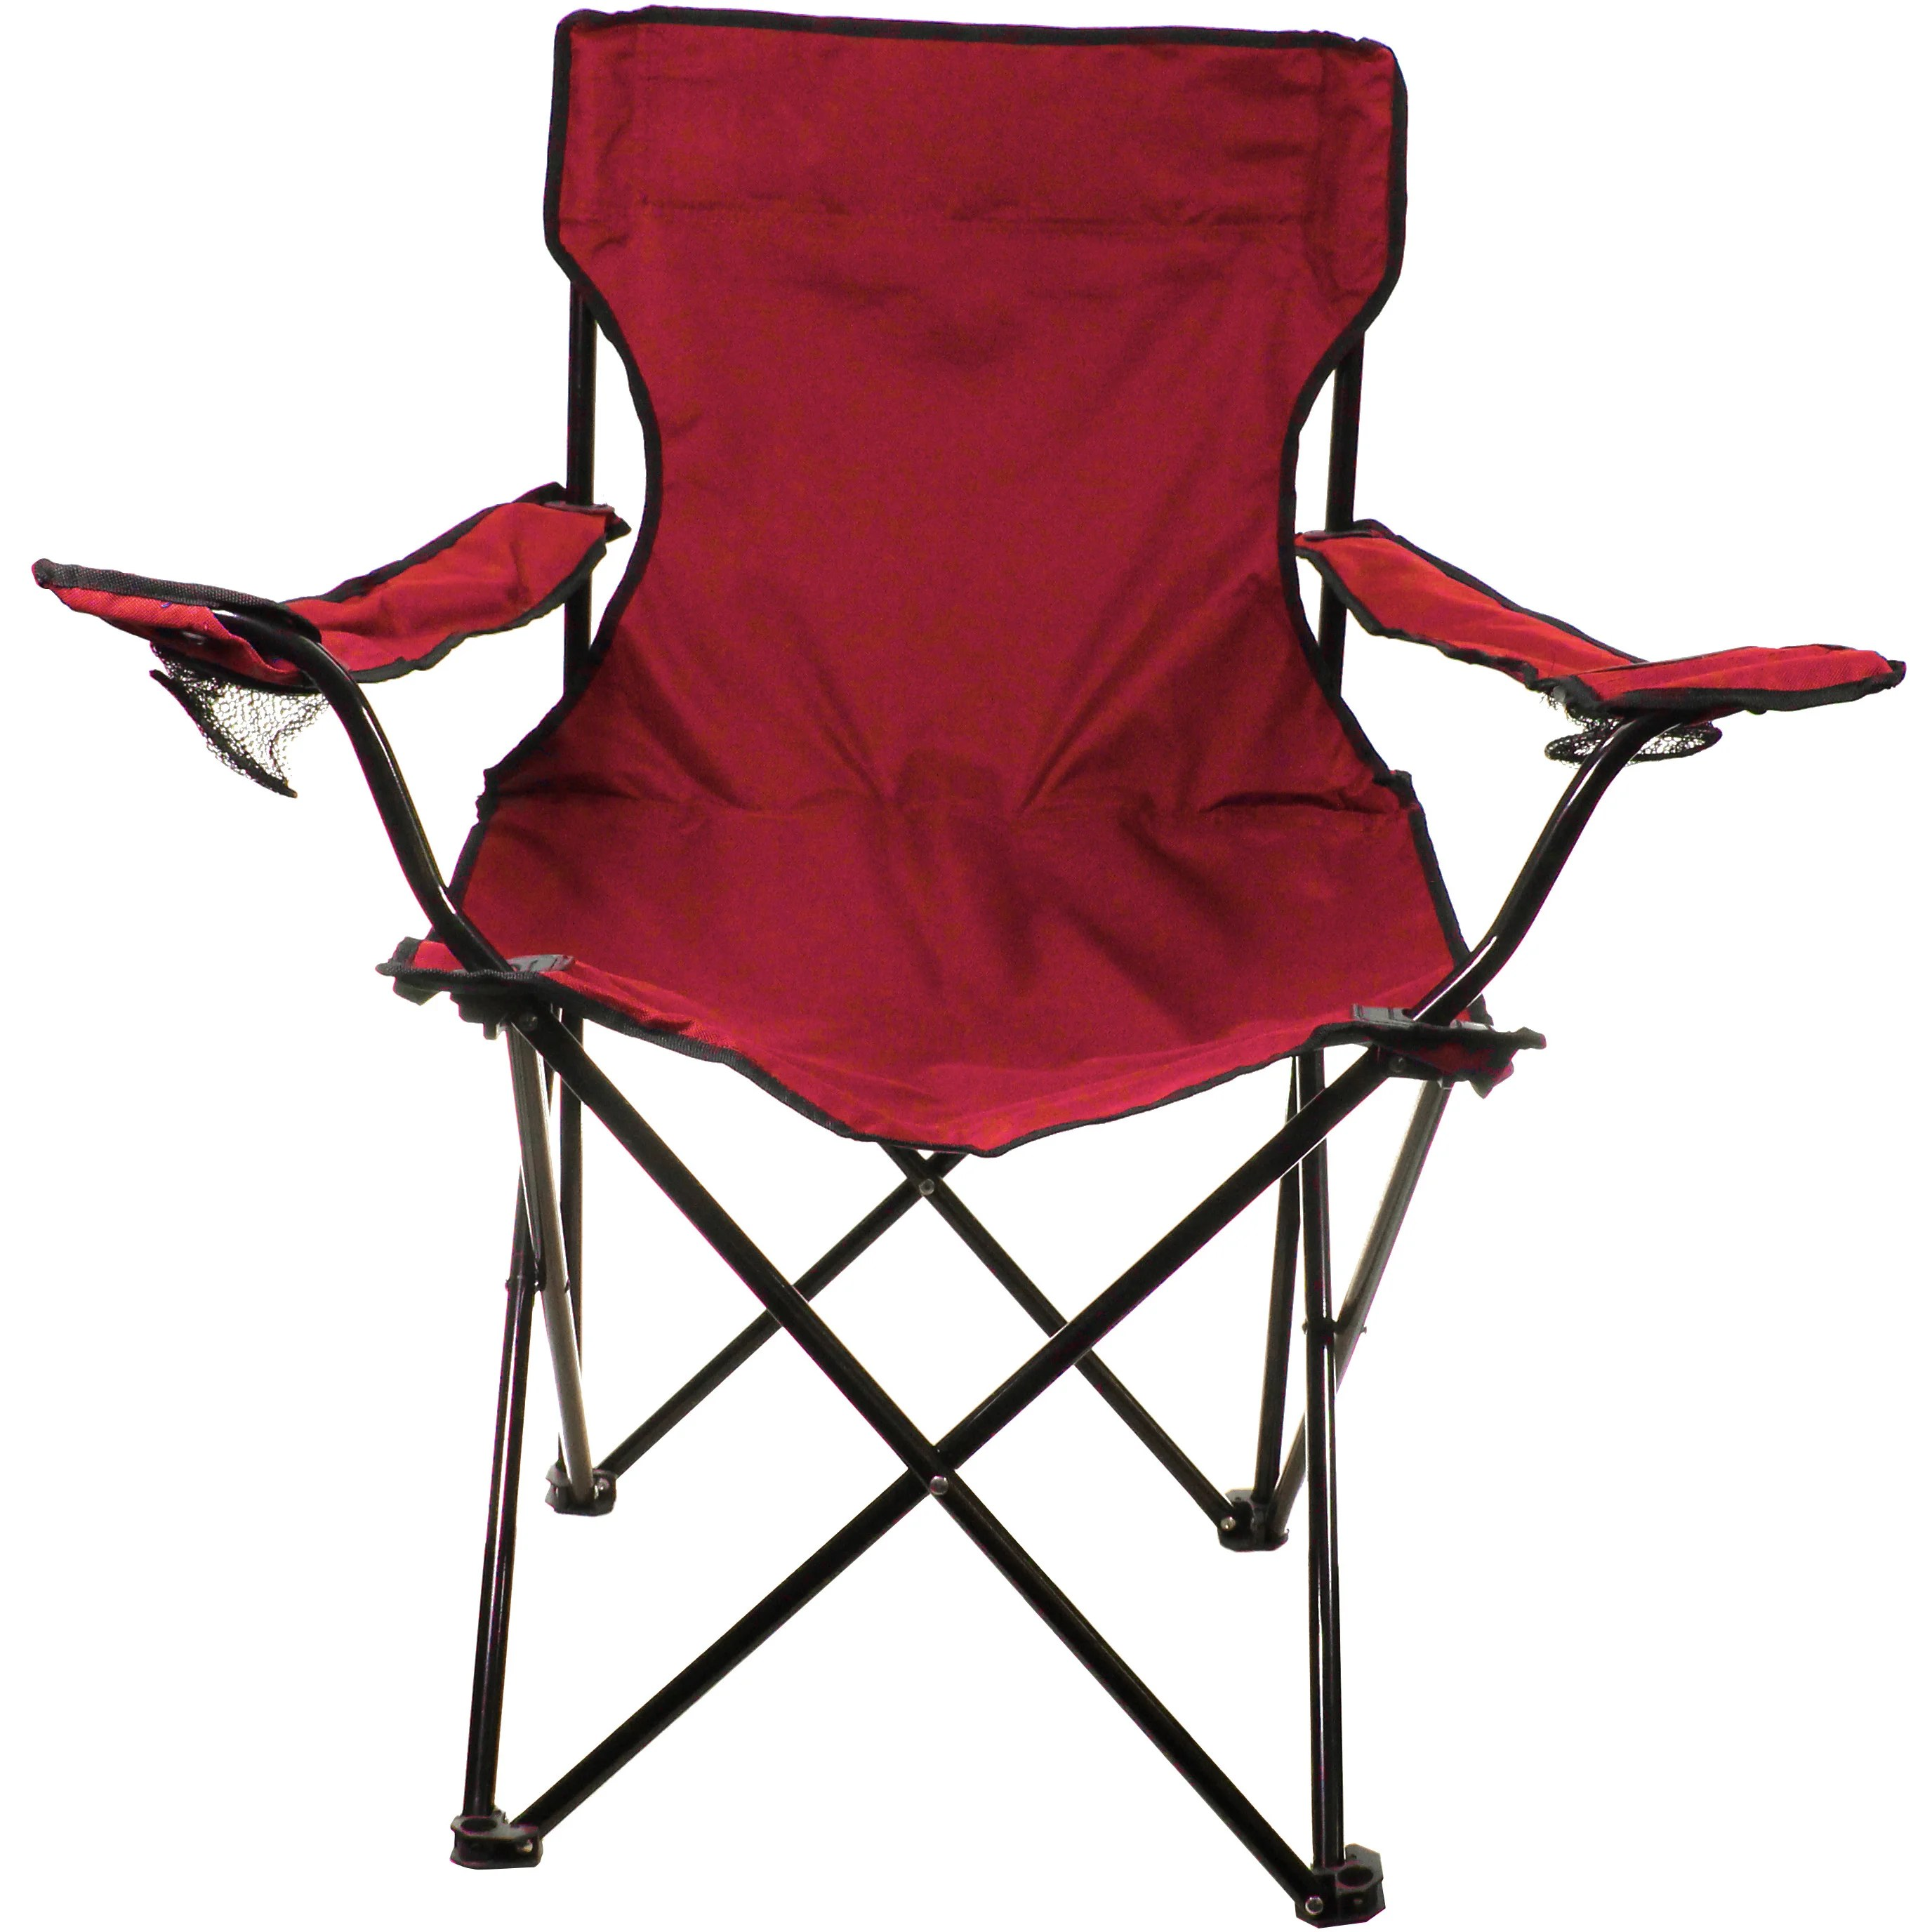 quality folding chairs swivel gaming chair with carrying bag trade show giveaways